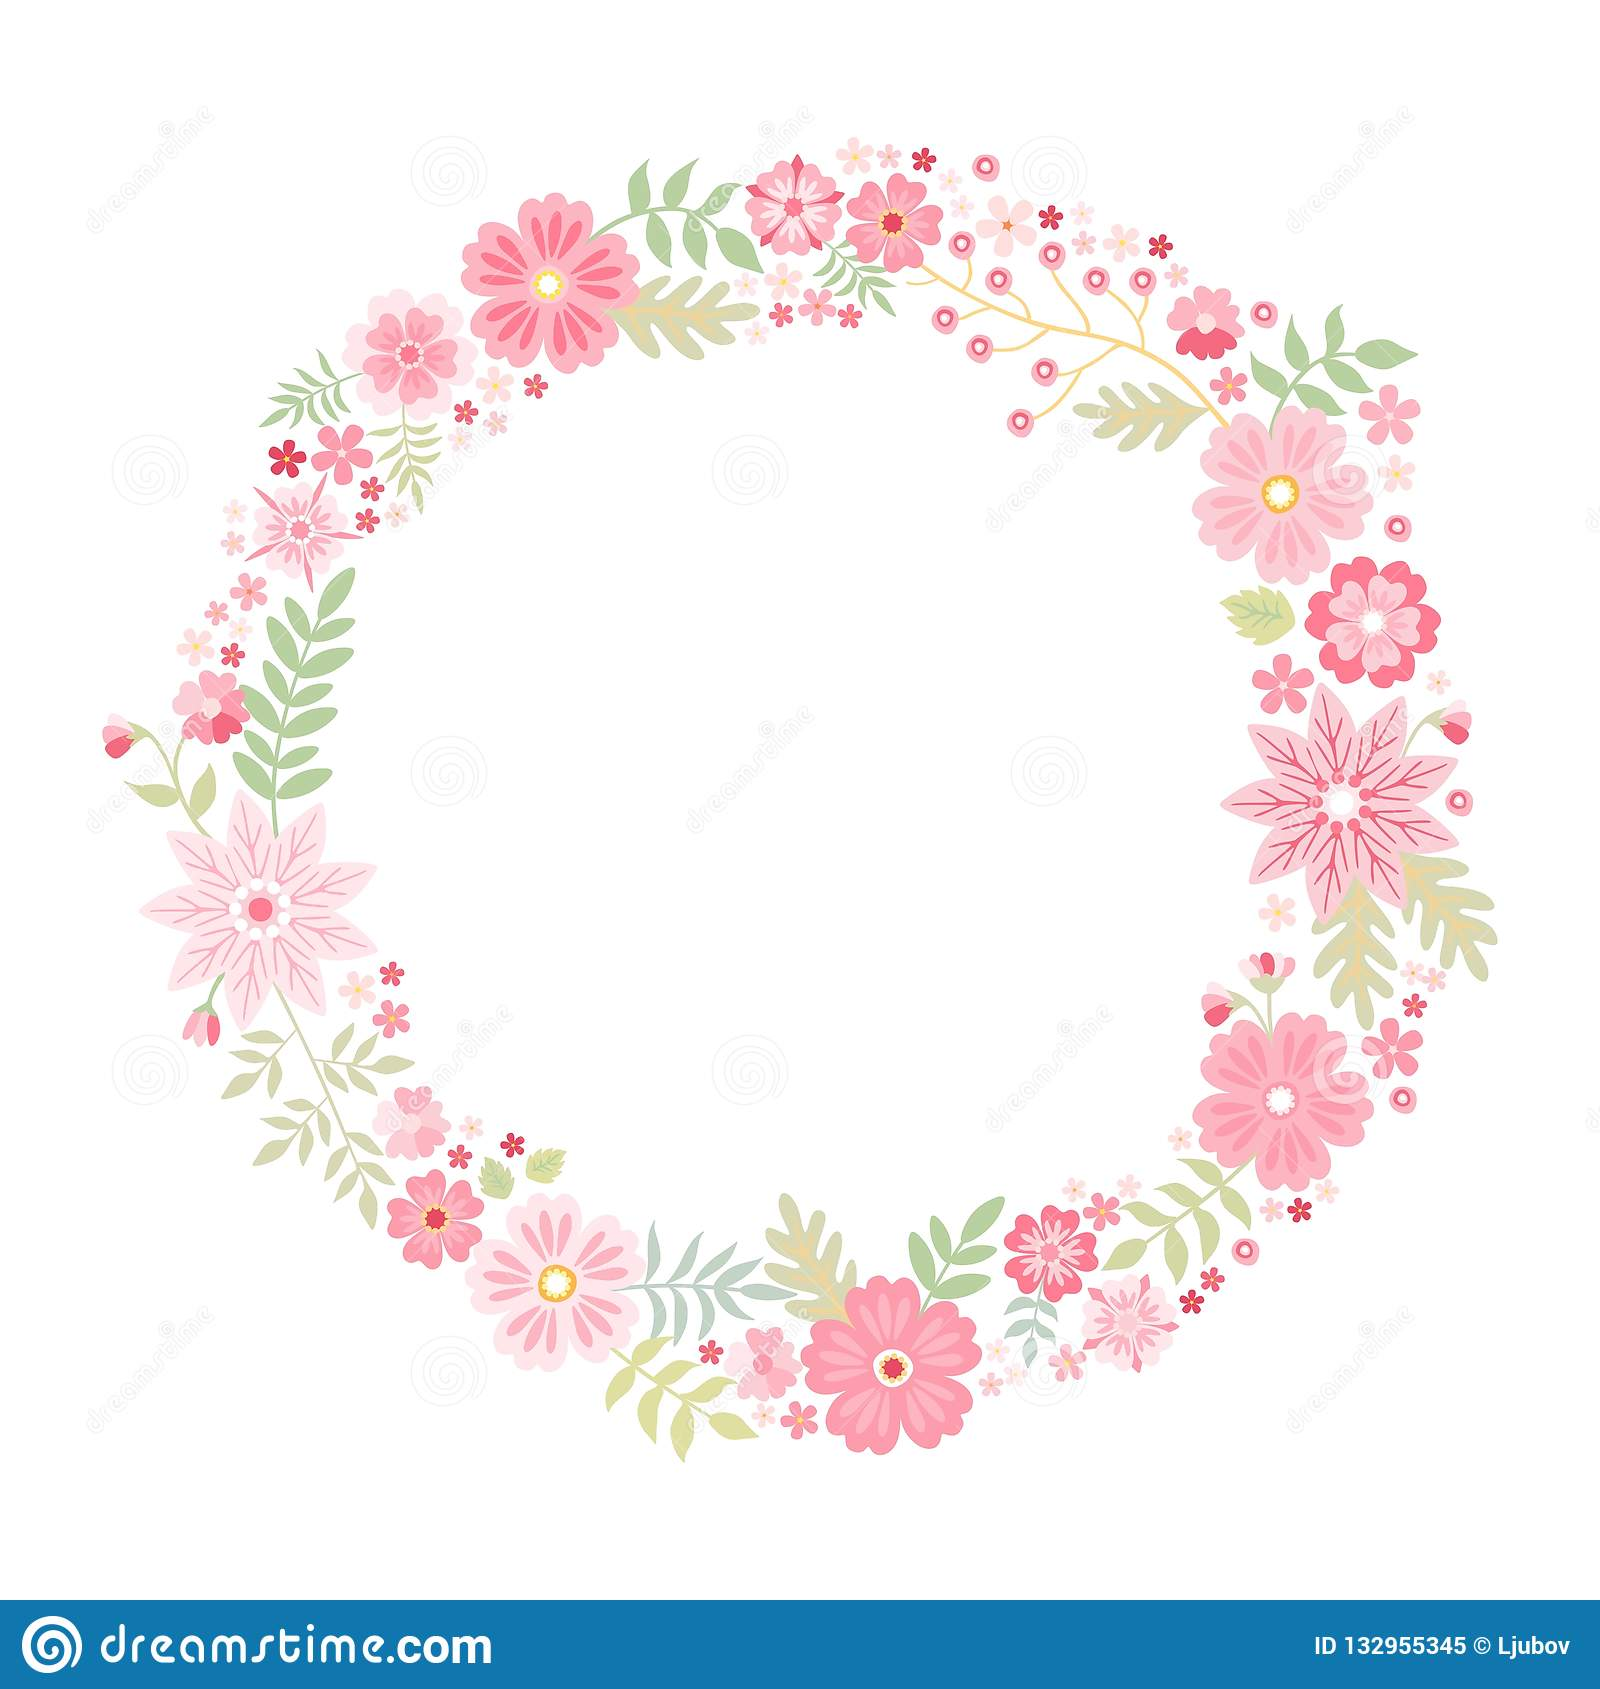 Romantic floral round frame with cute pink flowers. Beautiful wreath isolated on white background. Vector template